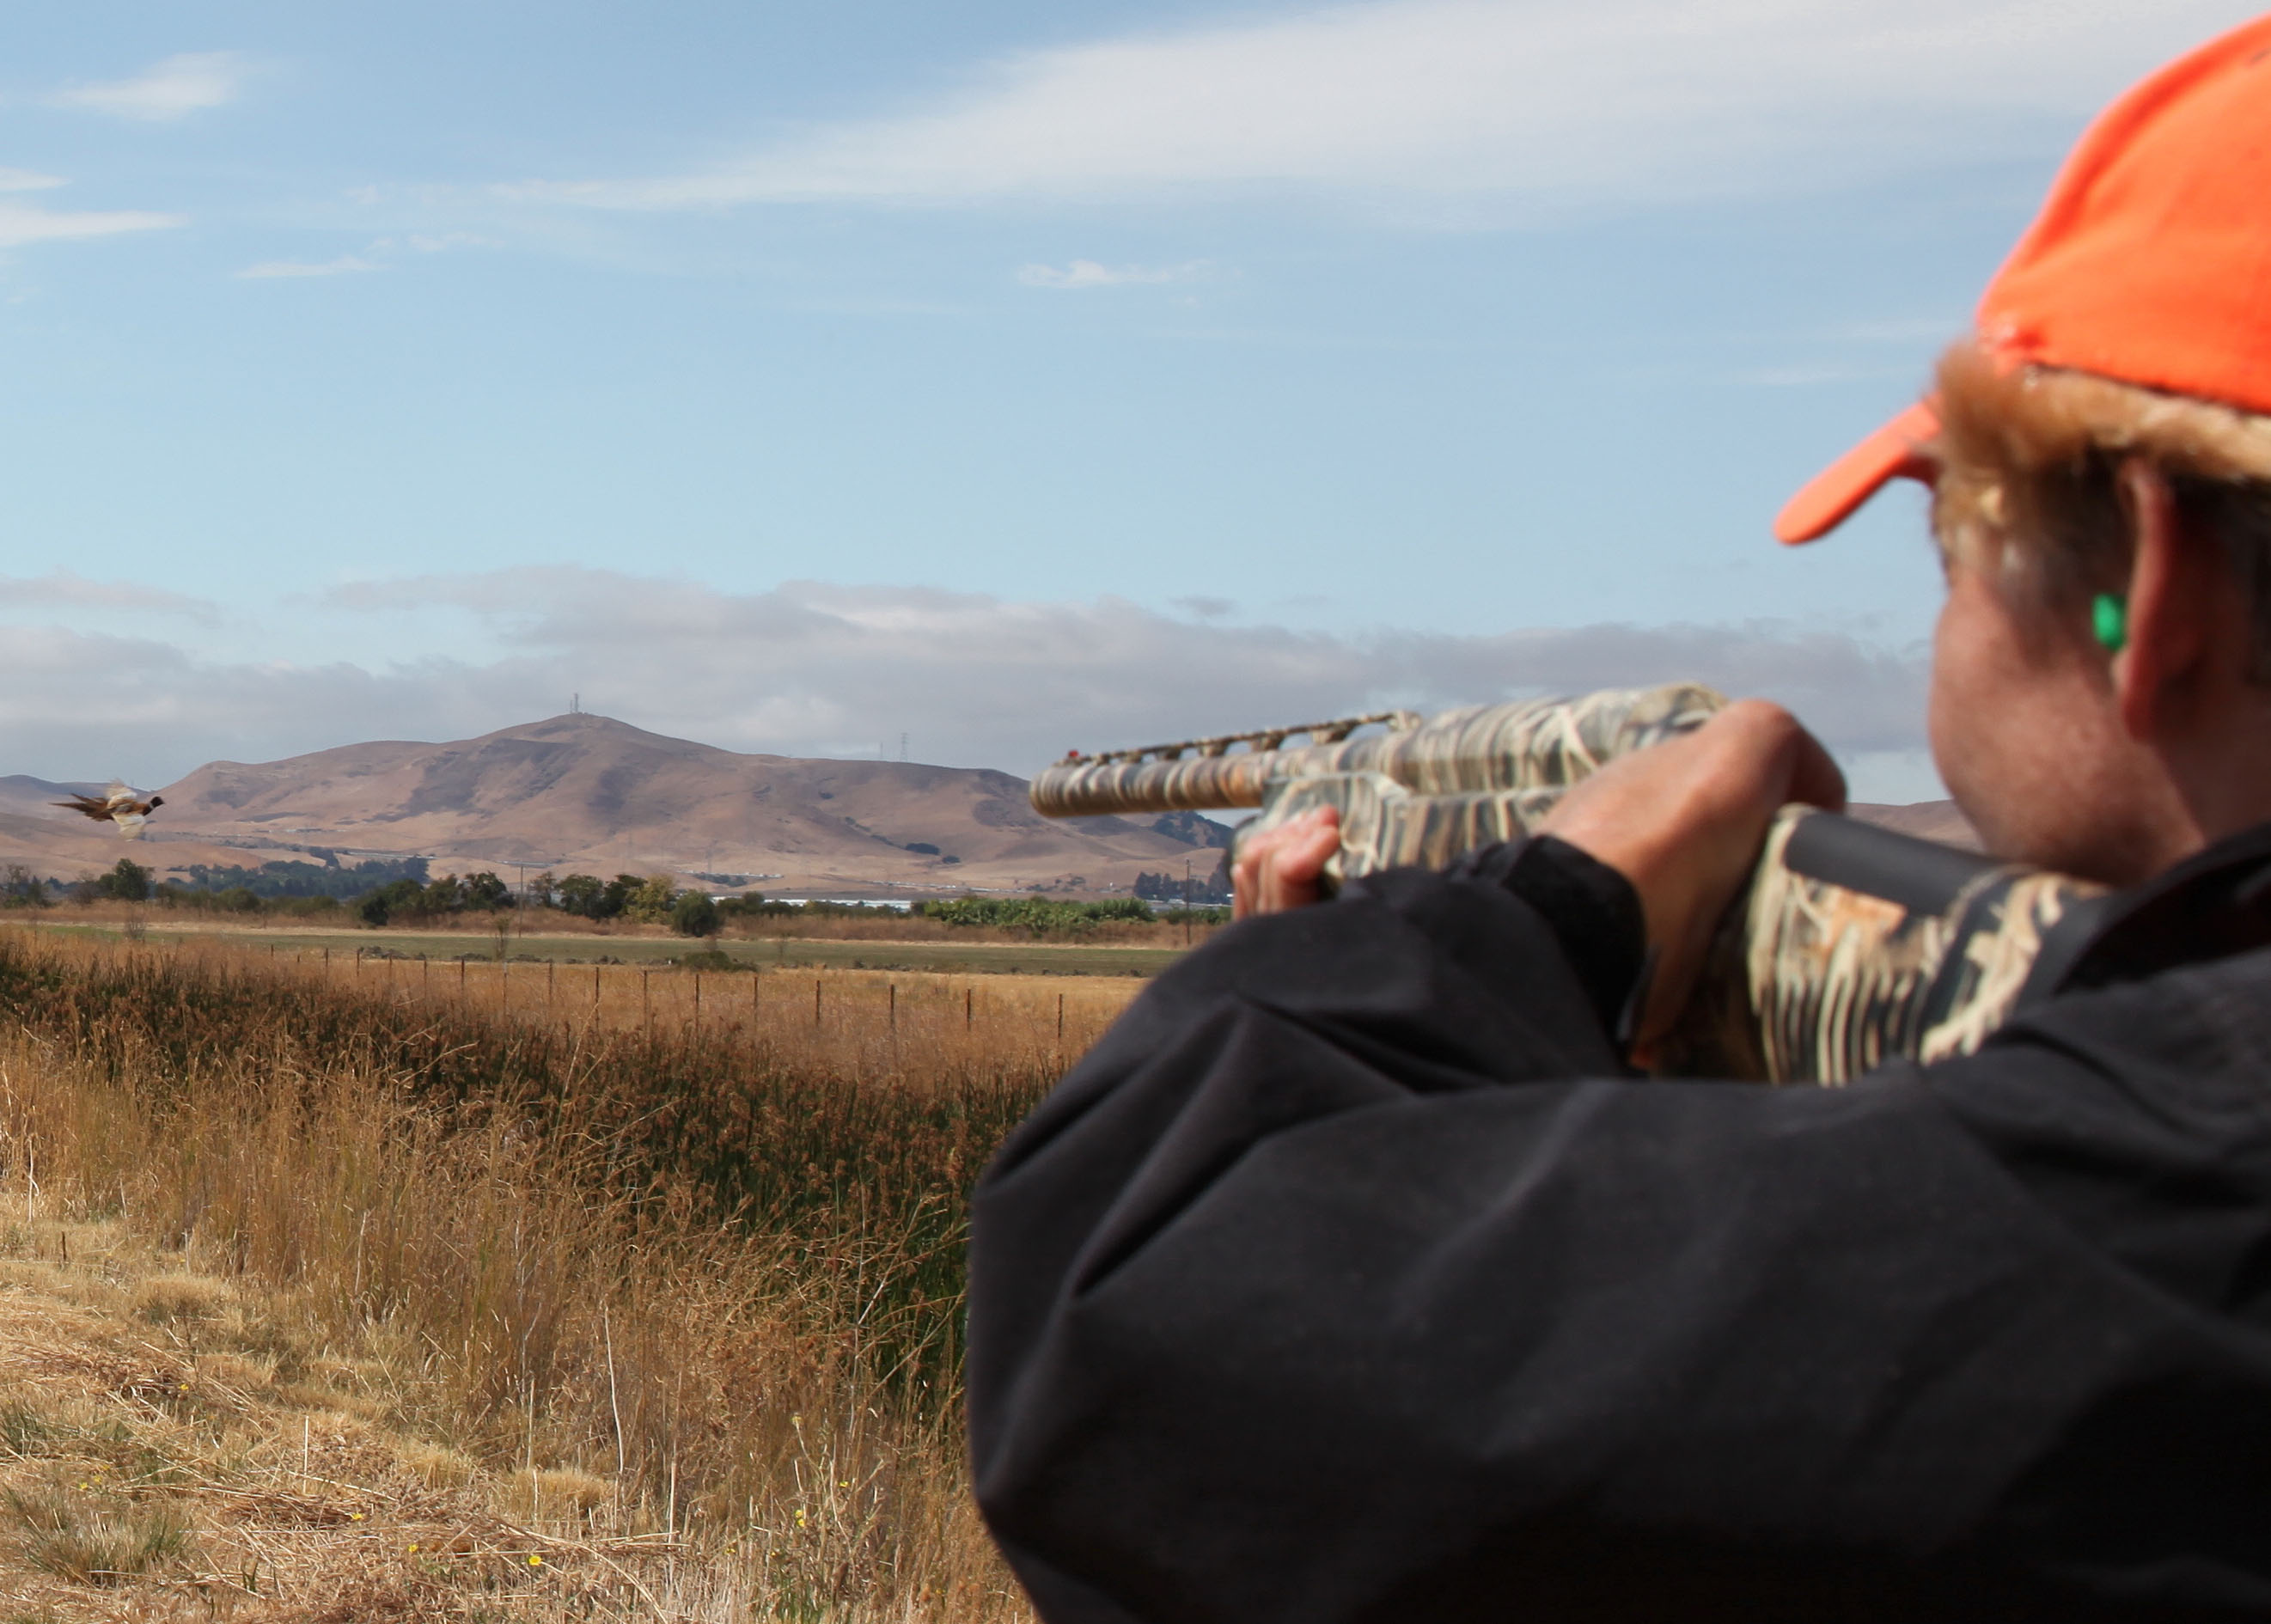 Man holding a camo shotgun in the field